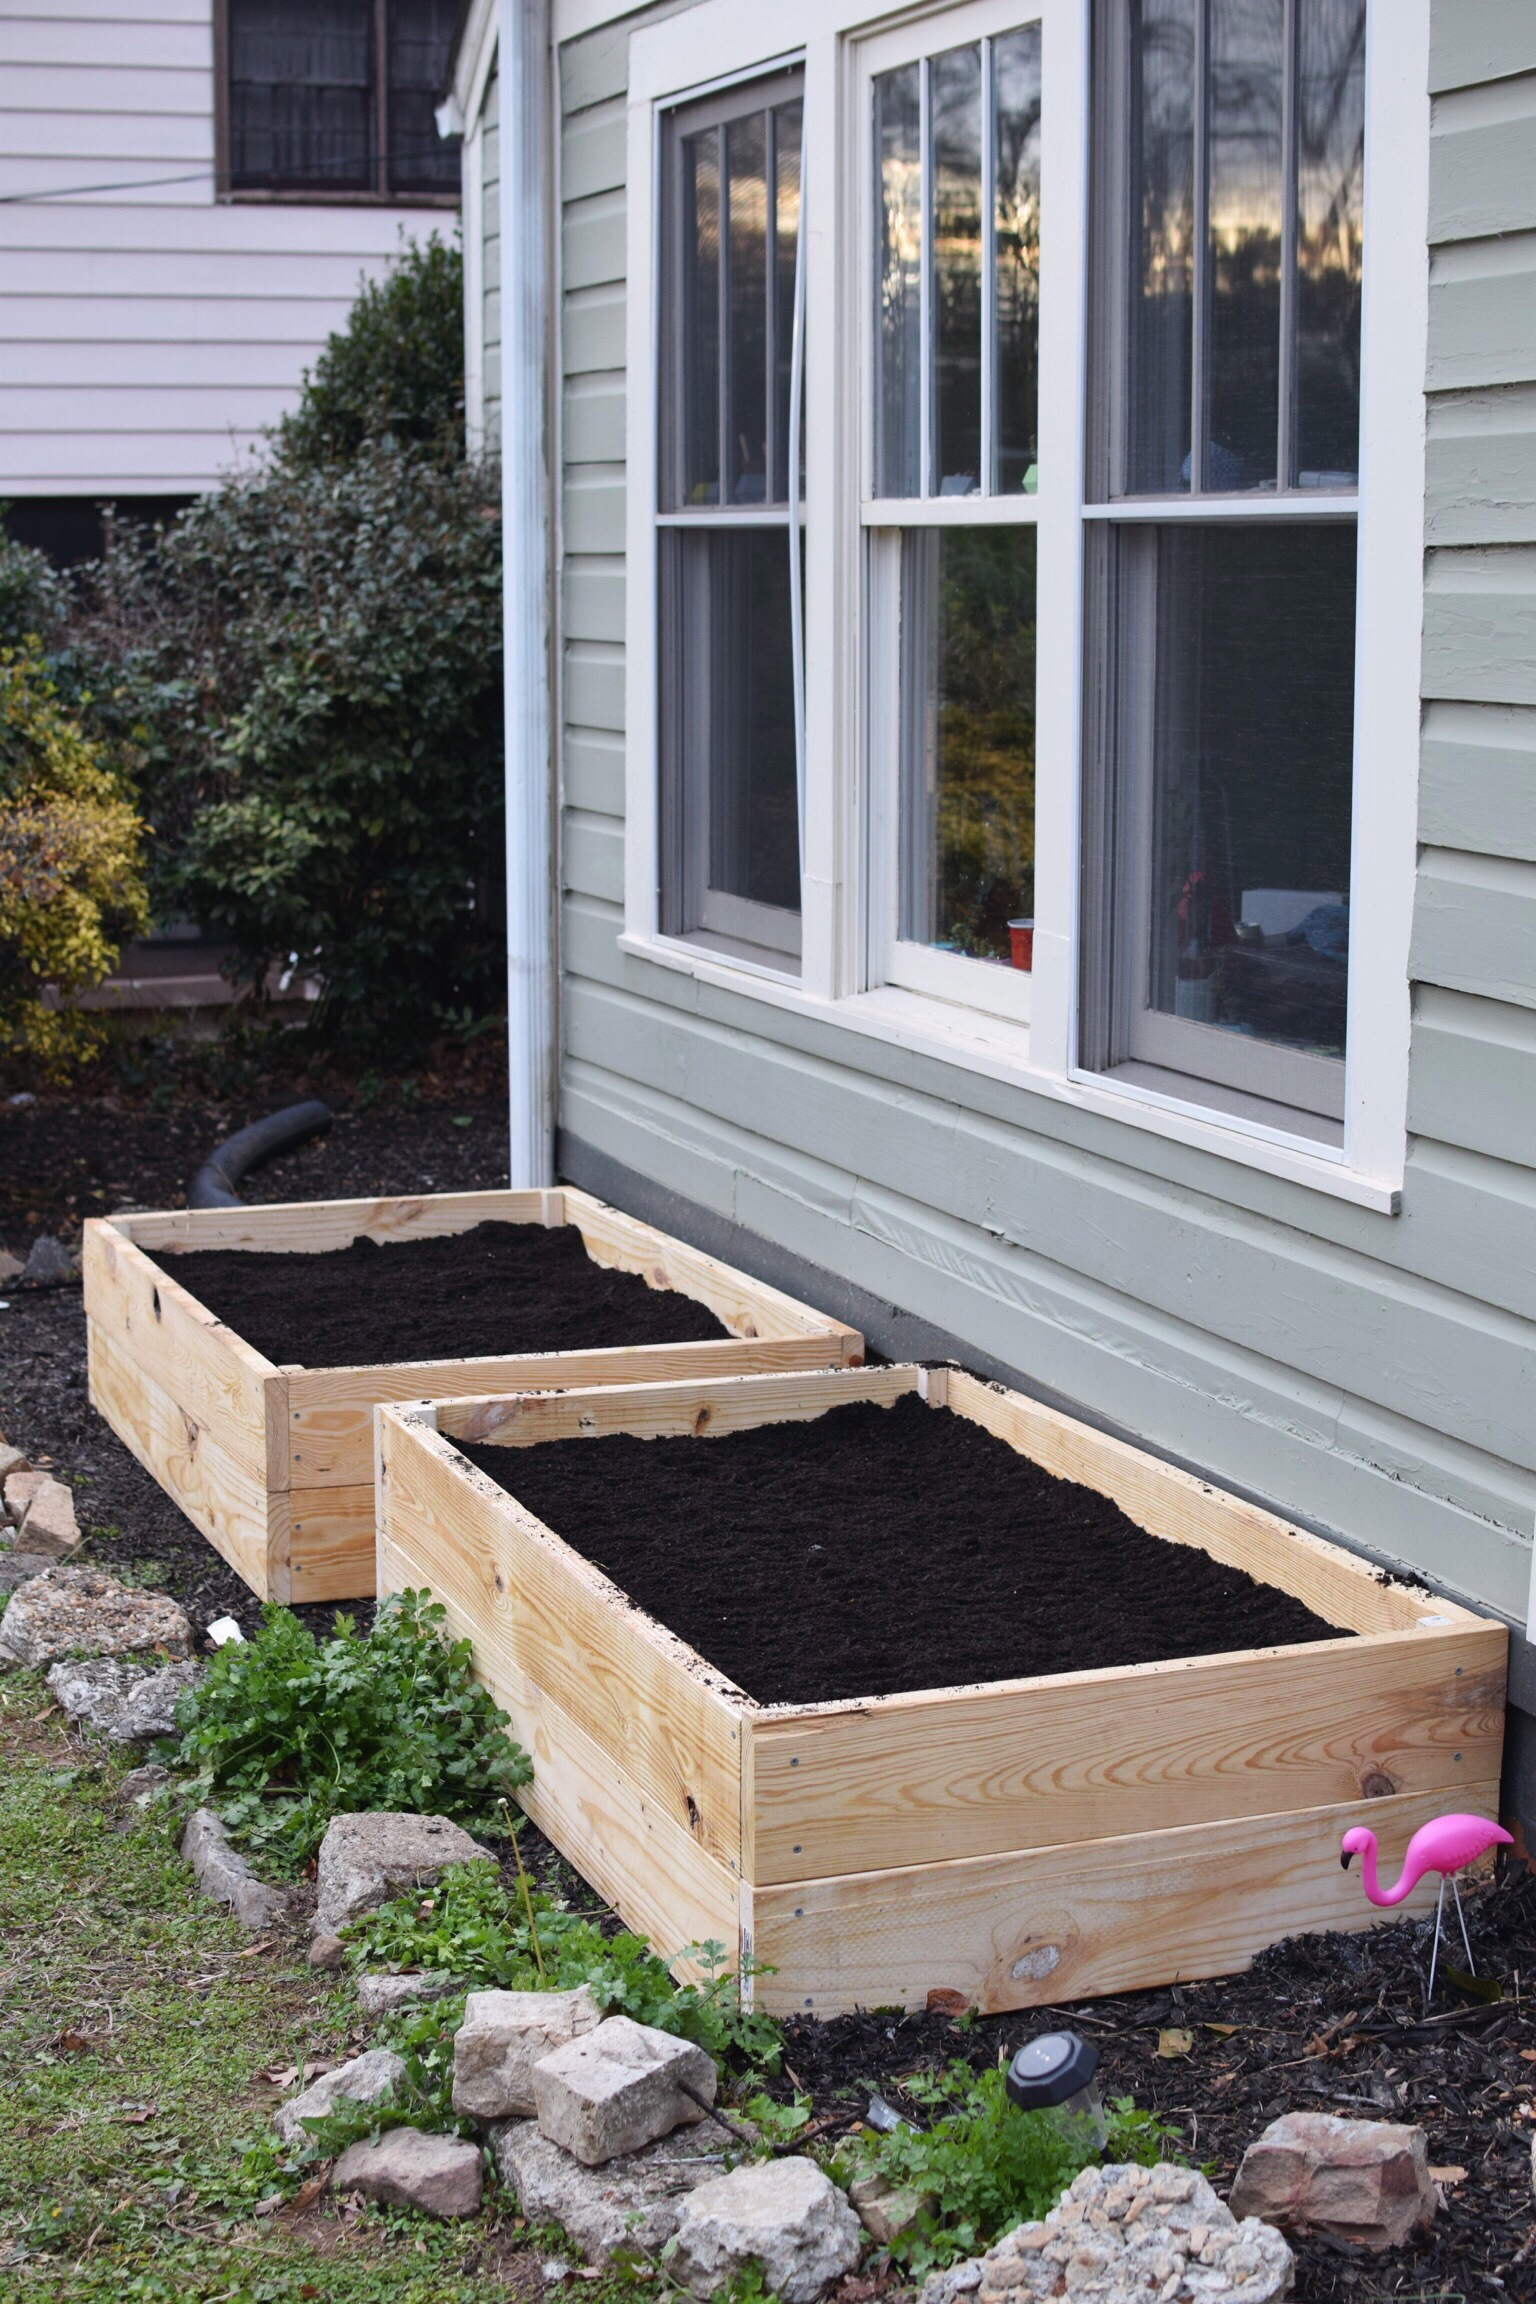 Raised beds ready for planting!